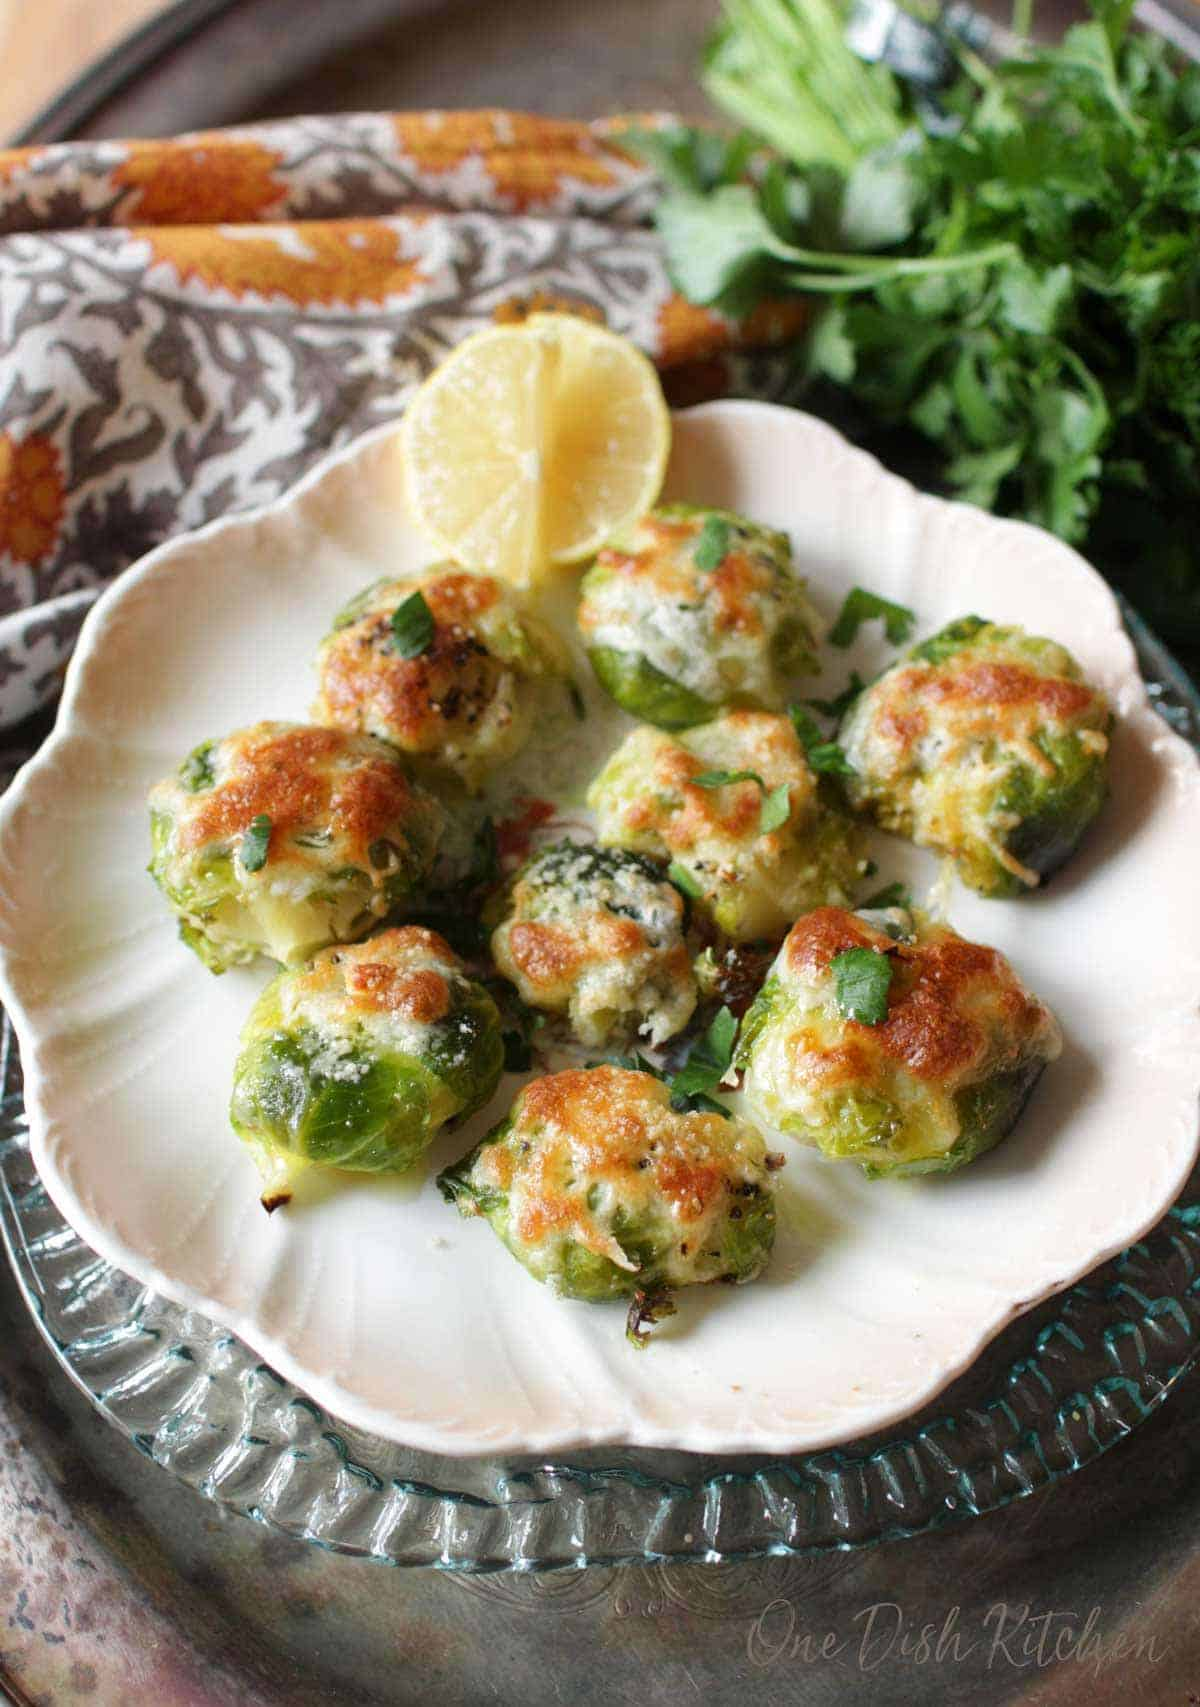 An overhead view of a plate of cheesy smashed brussels sprouts garnished with lemon slices